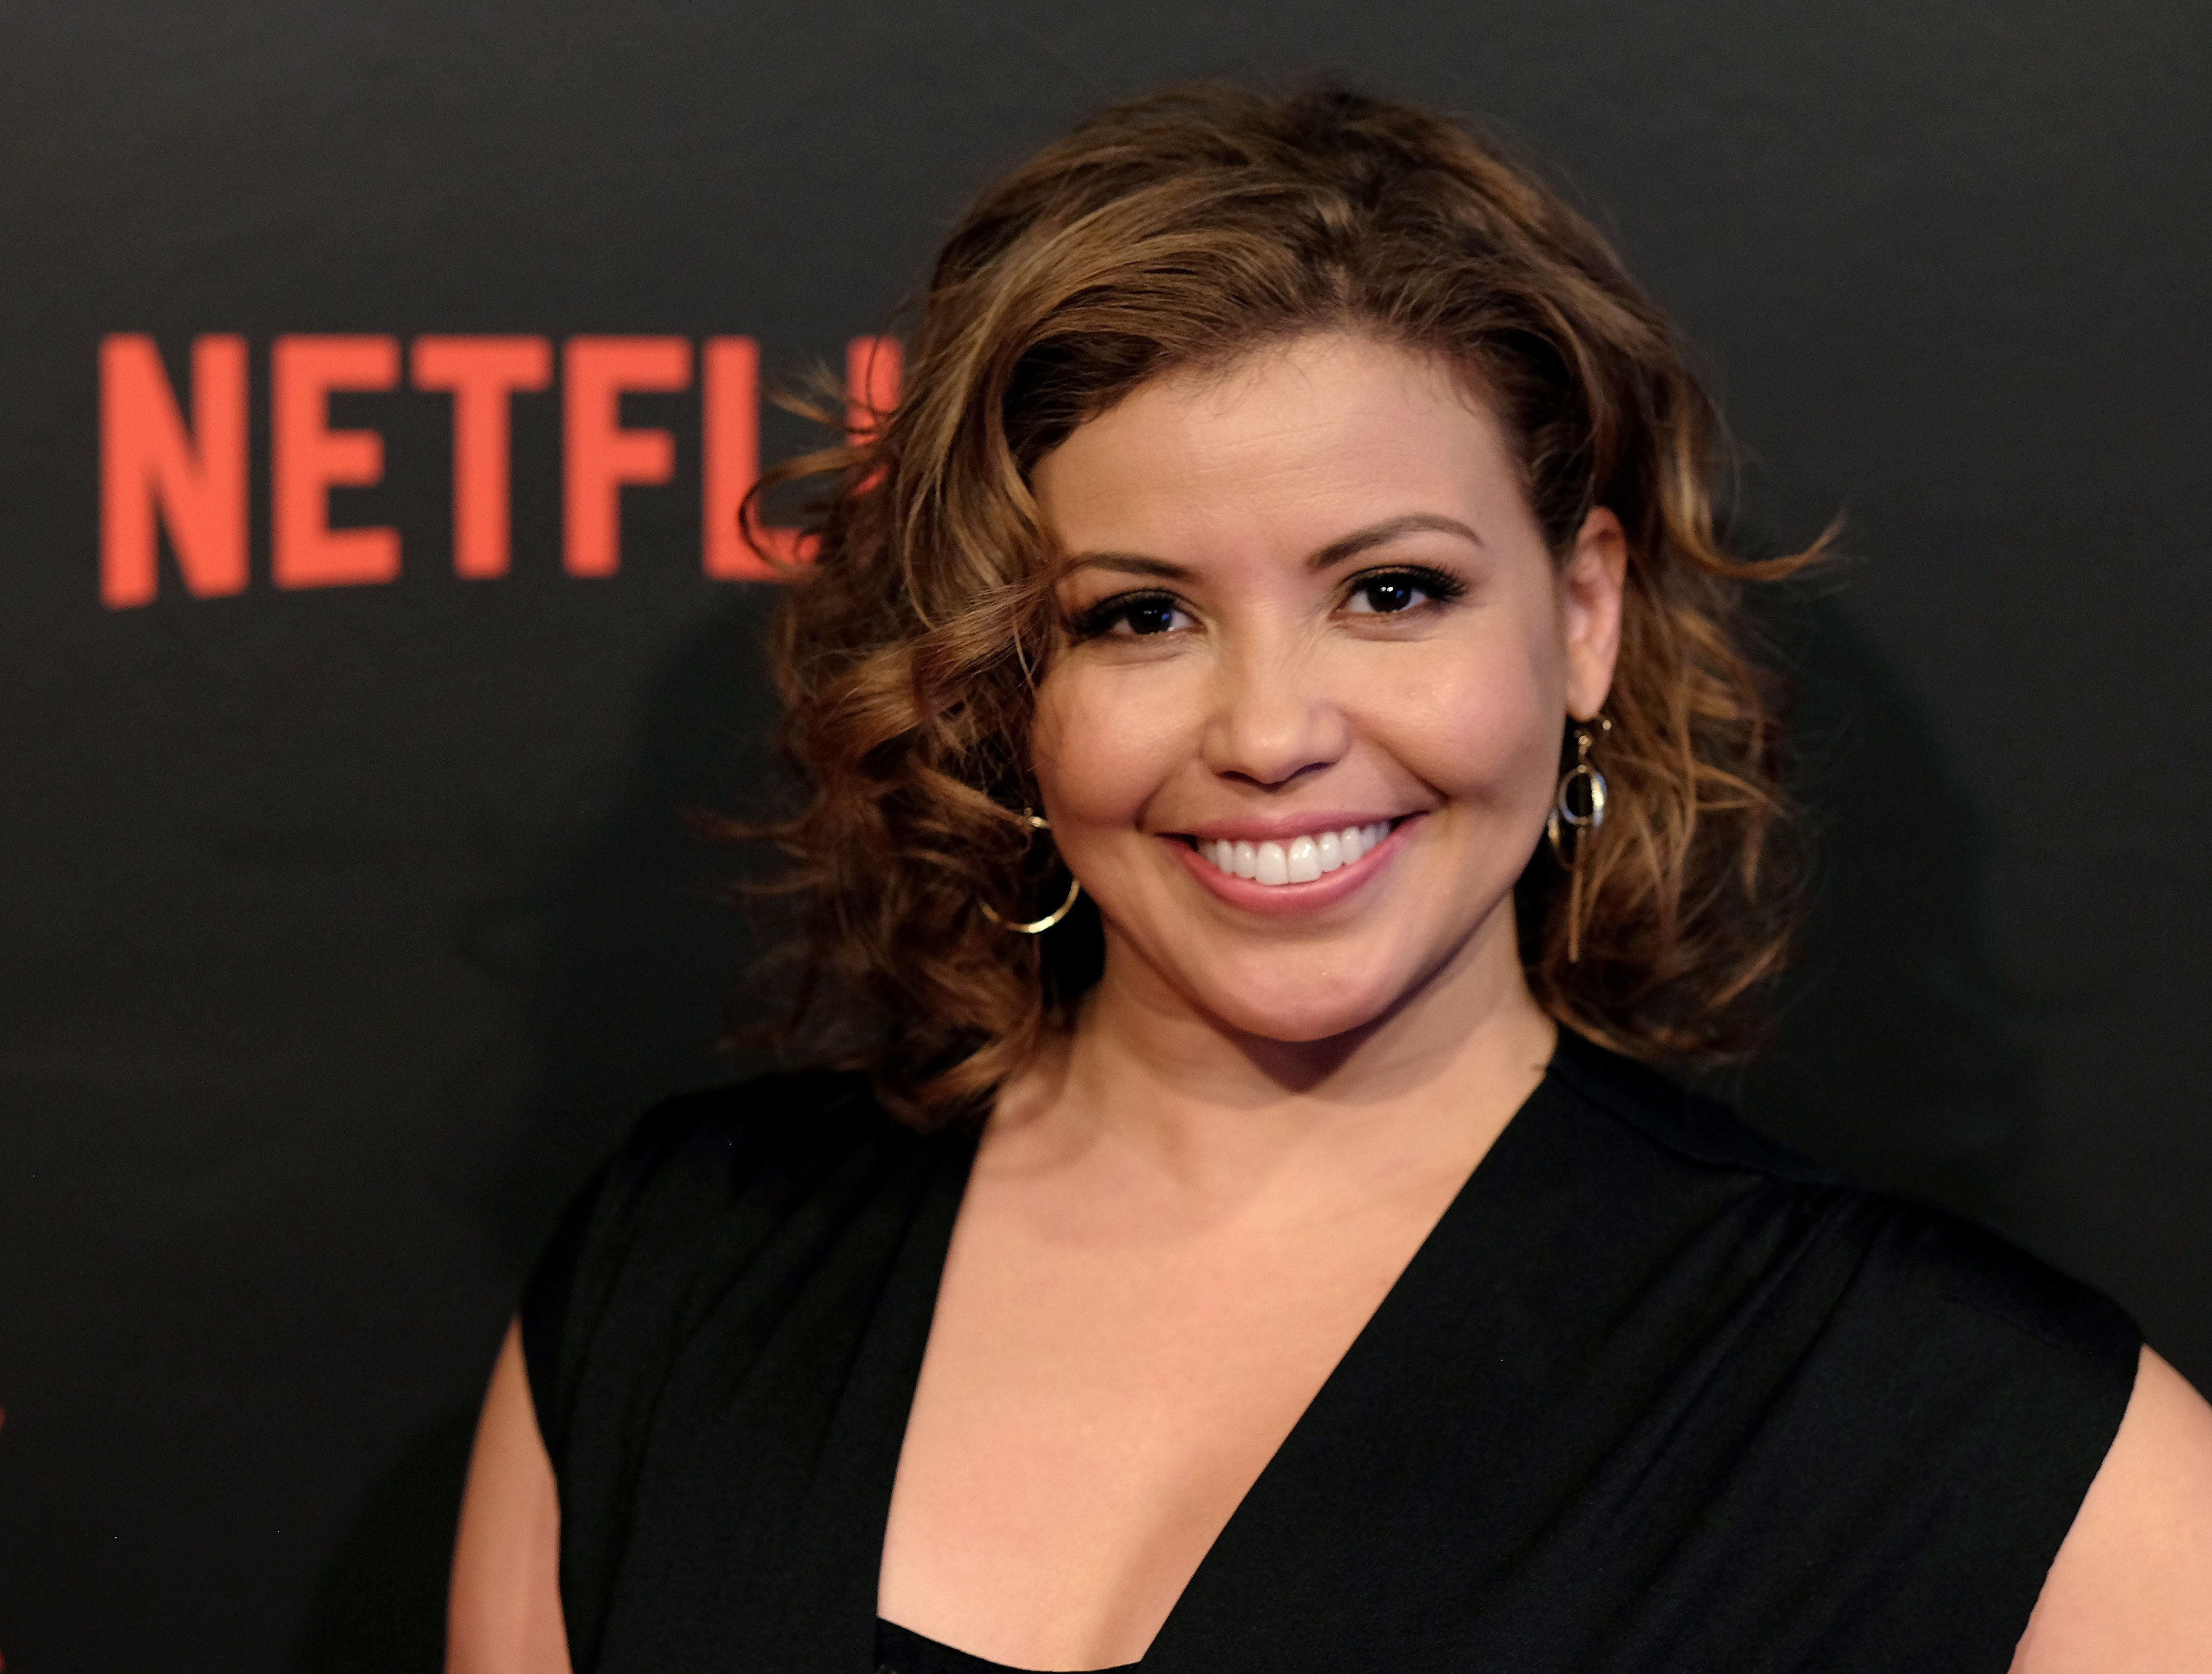 BEVERLY HILLS, CA - MAY 09:  Actress Justina Machado attends The Women Of Netflix's 'One Day At A Time' For Your Consideration Event at Netflix FYSee Space on May 9, 2017 in Beverly Hills, California.  (Photo by Matthew Simmons/Getty Images)